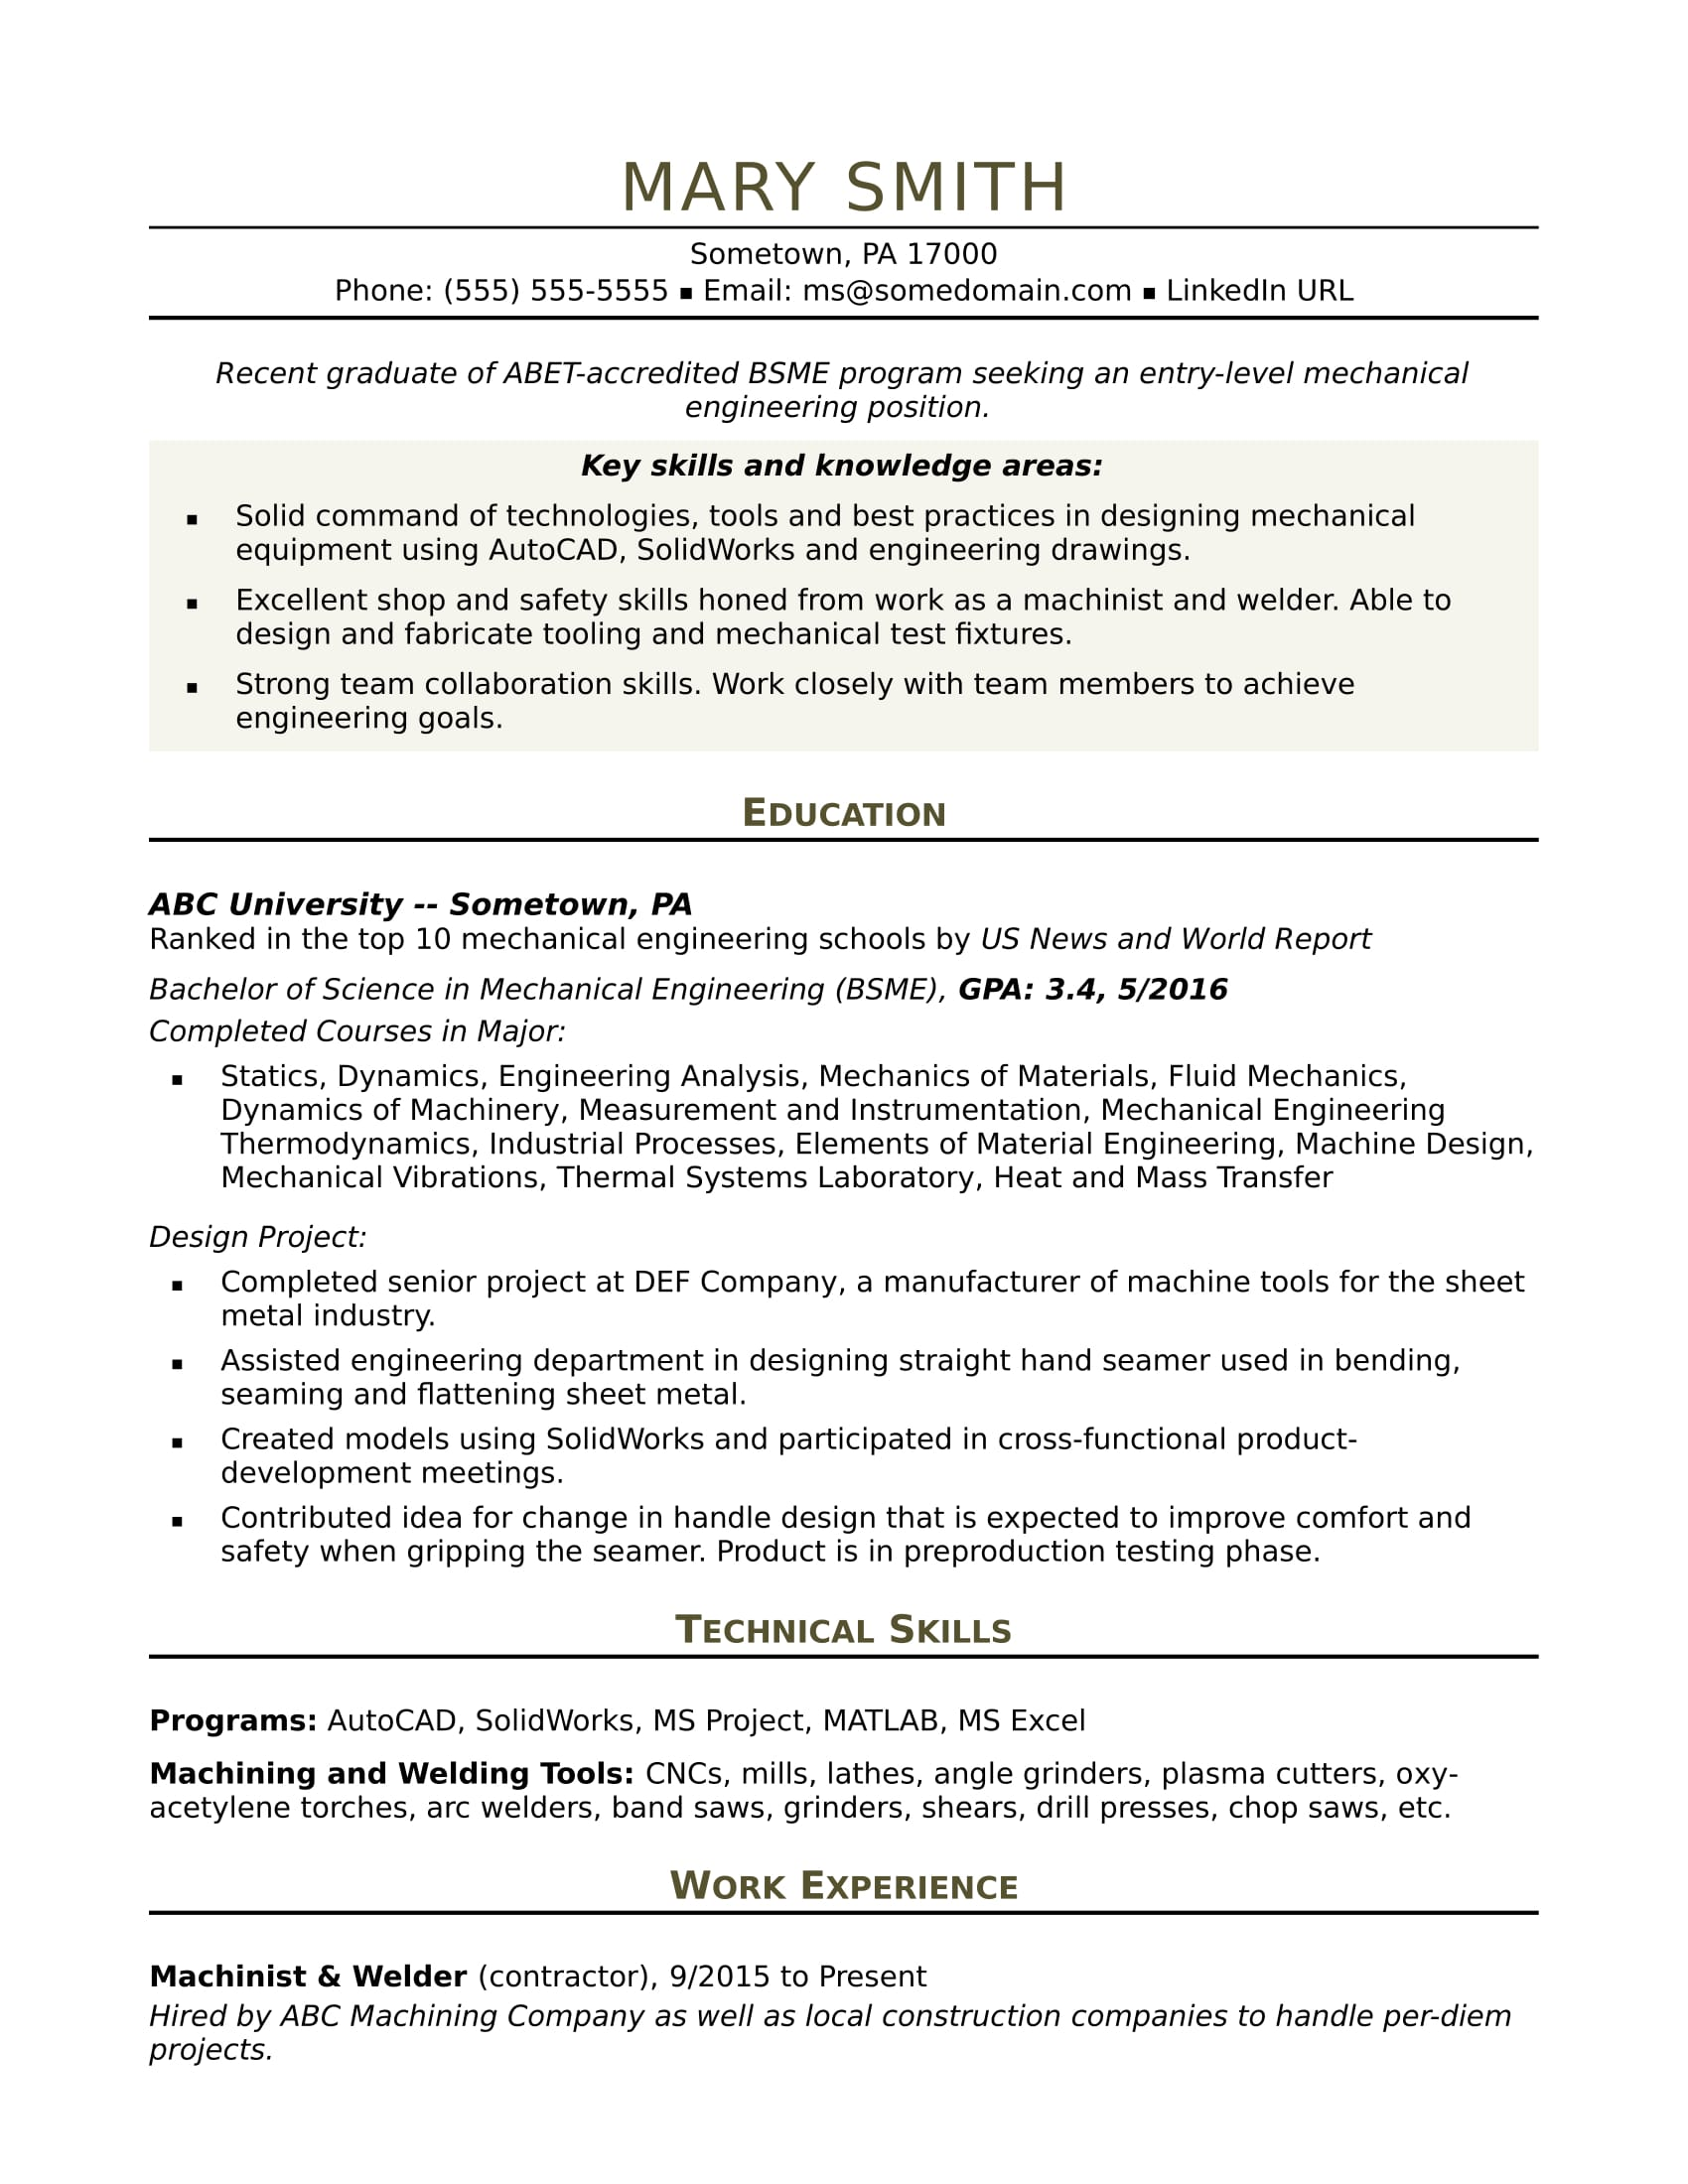 Sample Resume For An Entry Level Mechanical Engineer | Monster.com